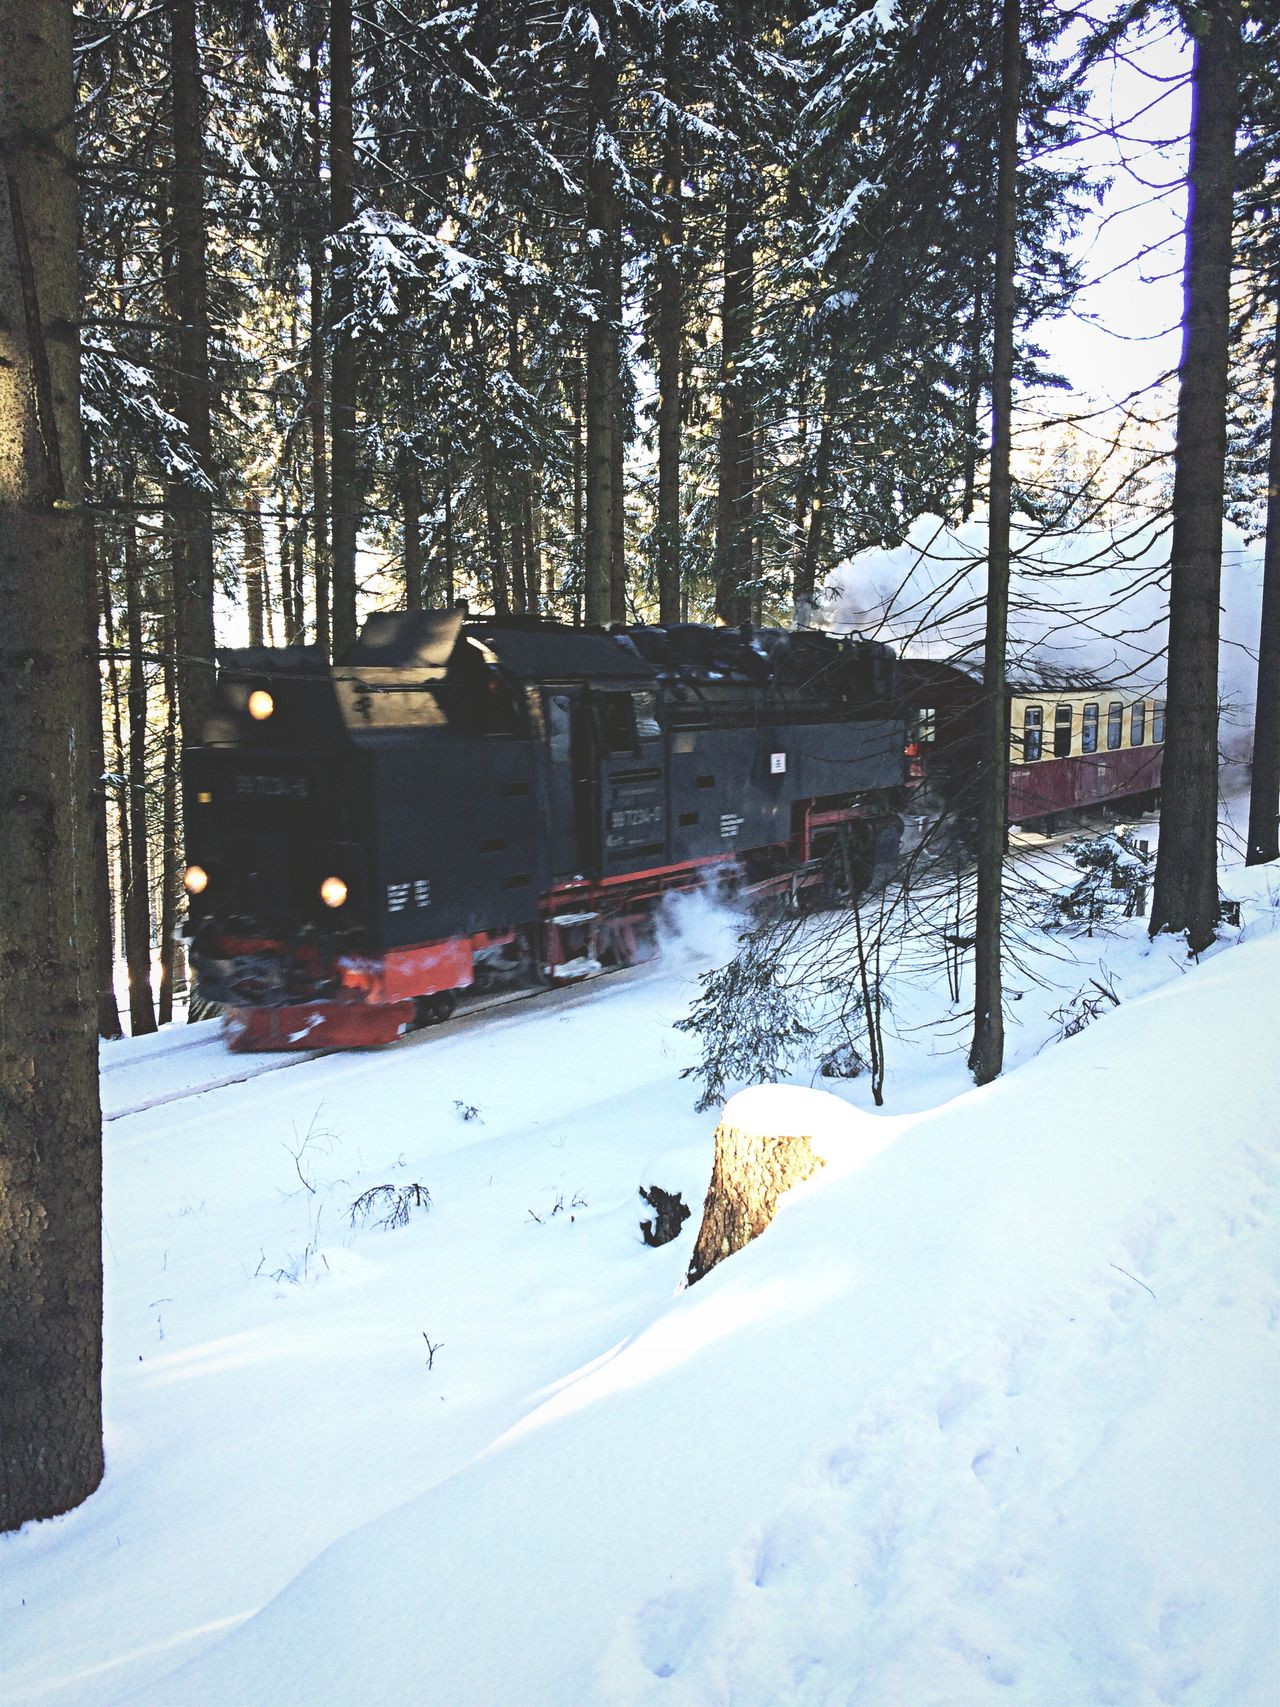 Winter Snow Cold Temperature Weather Tree Nature Covering Outdoors Day Frozen Beauty In Nature Bare Tree Scenics No People Brockenbahn Brocken Steam Train Dampflok Harz